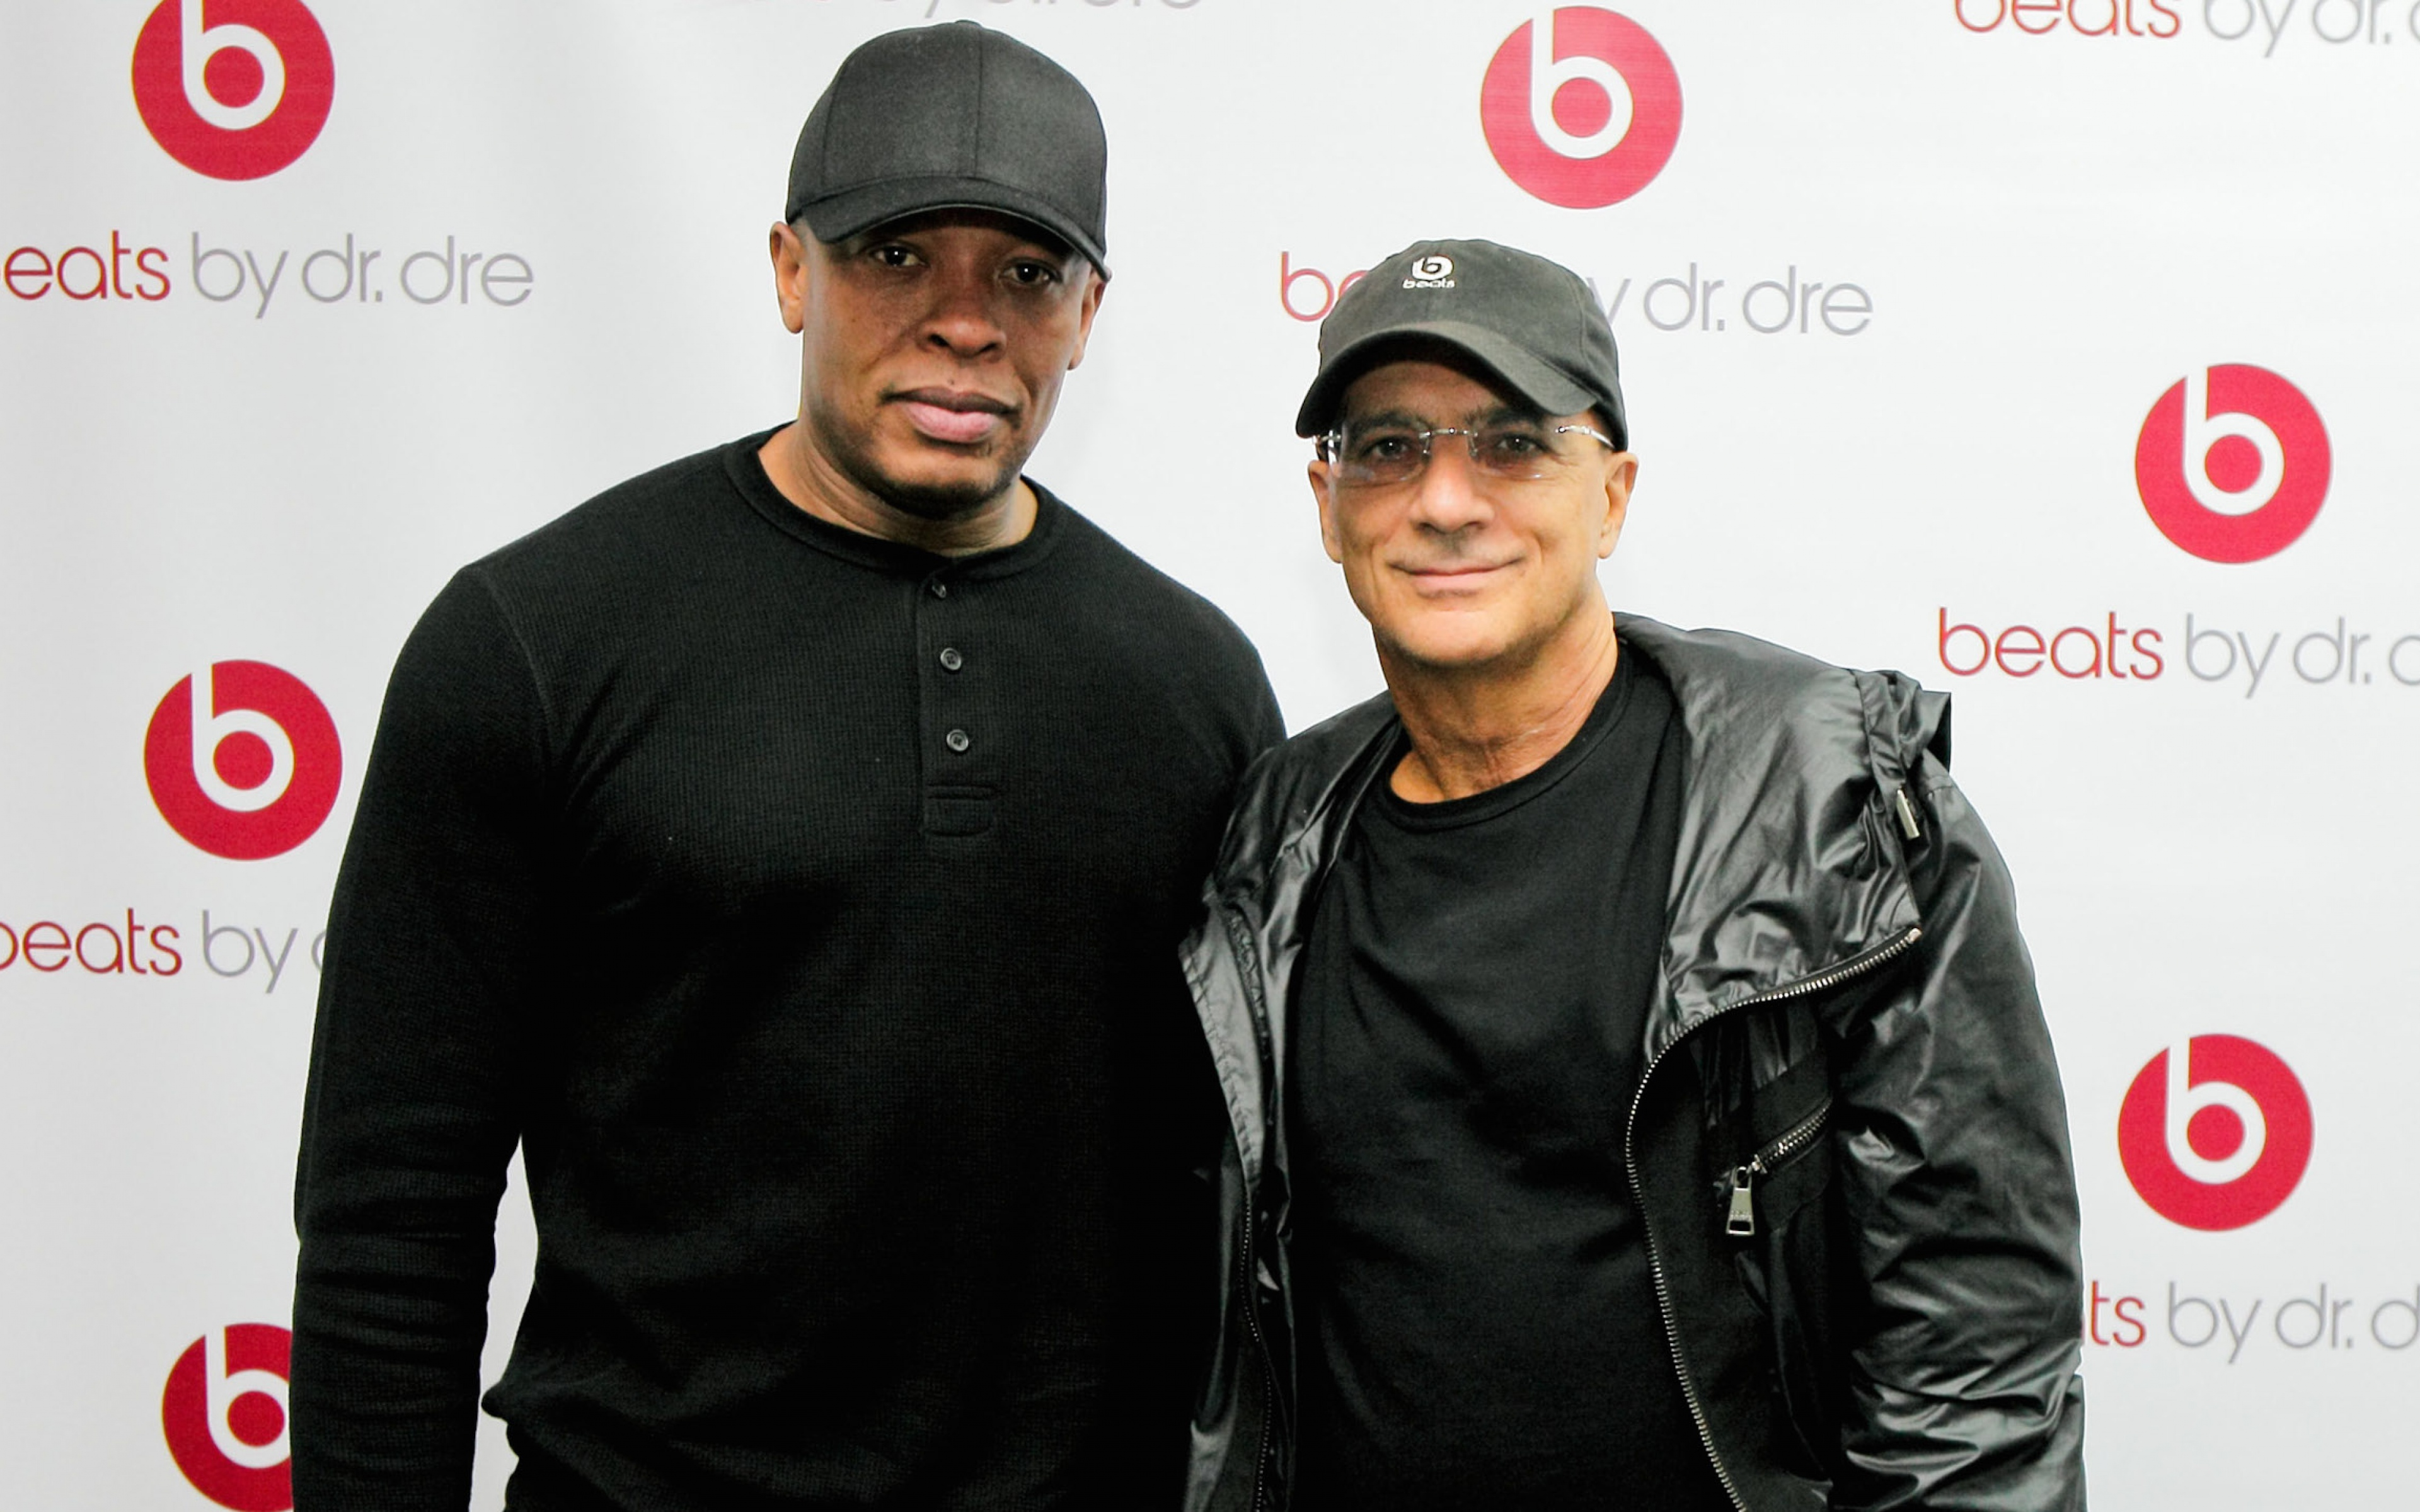 dr dre, jimmy ayovin, celebrities